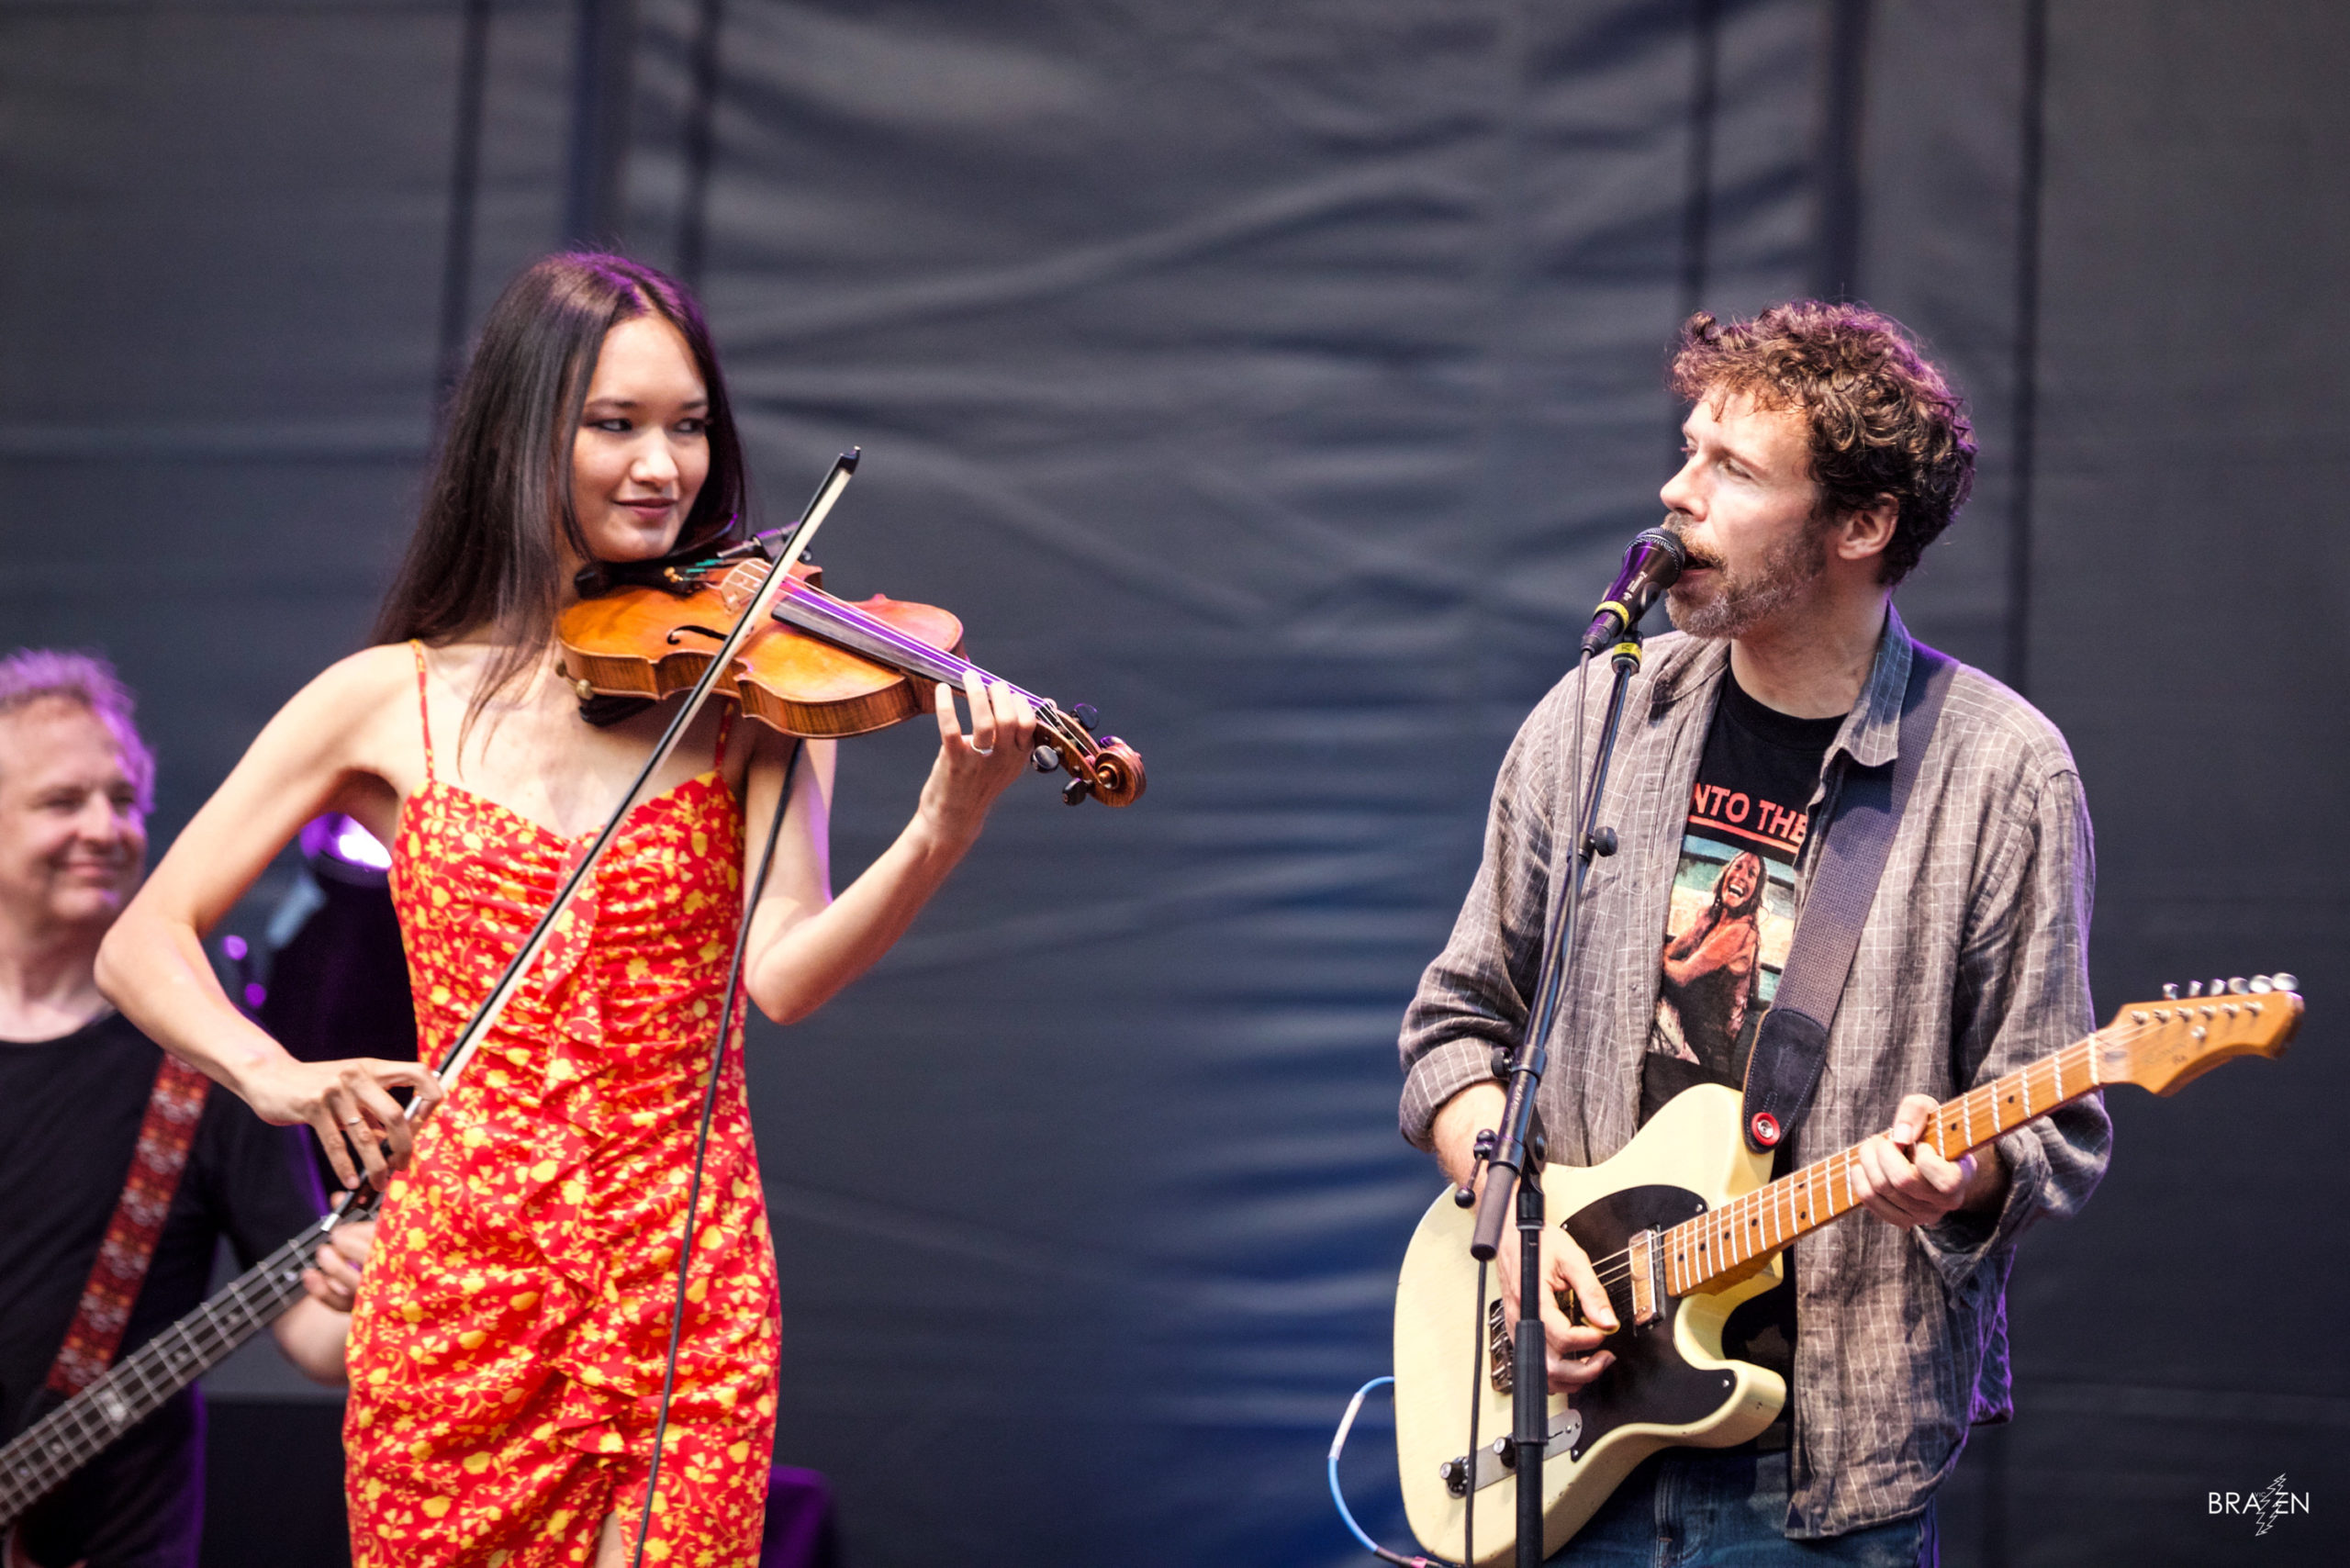 Joe Russo's Almost Dead at Westville Music Bowl (A Gallery)